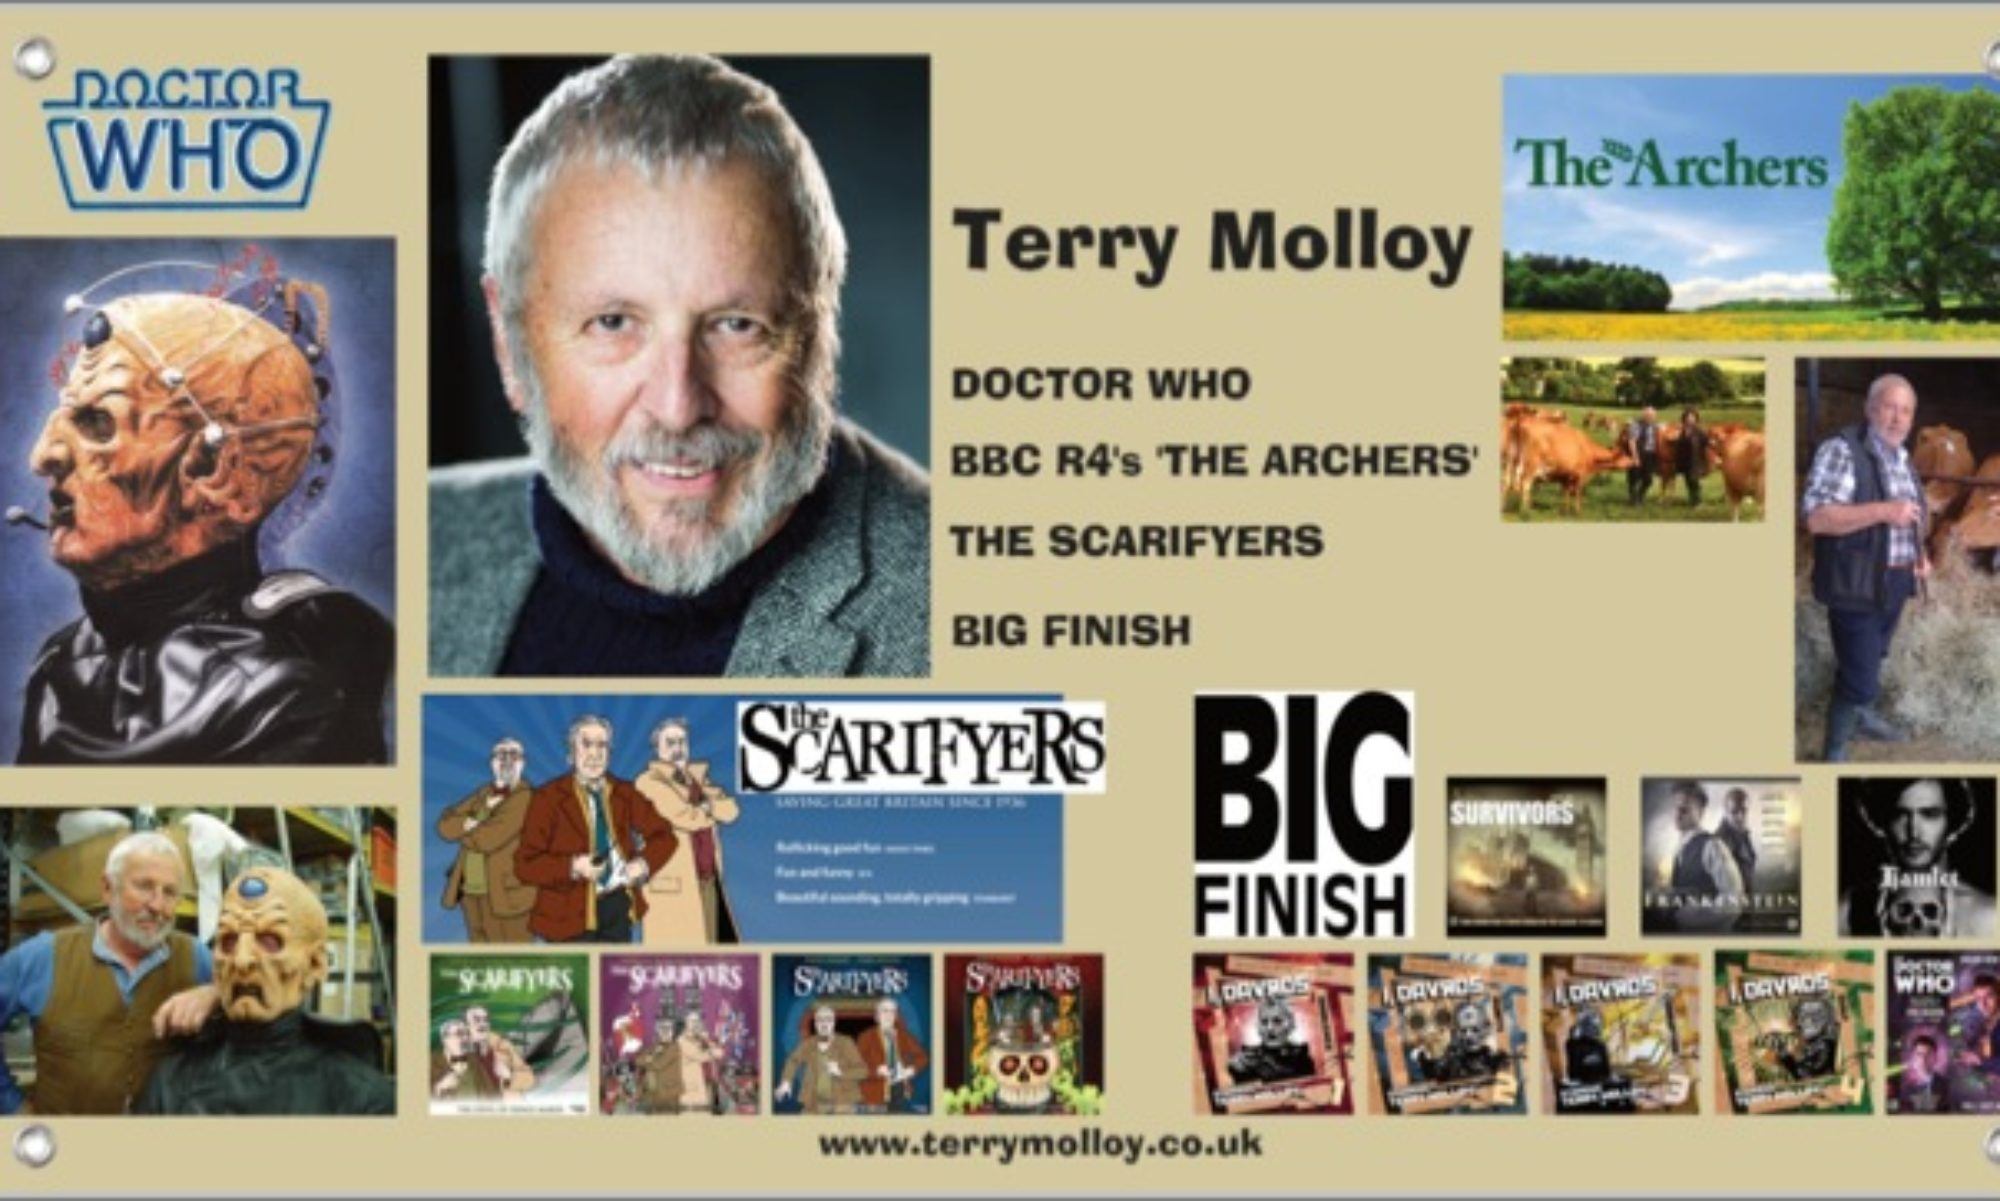 TERRY MOLLOY - OFFICIAL WEBSITE